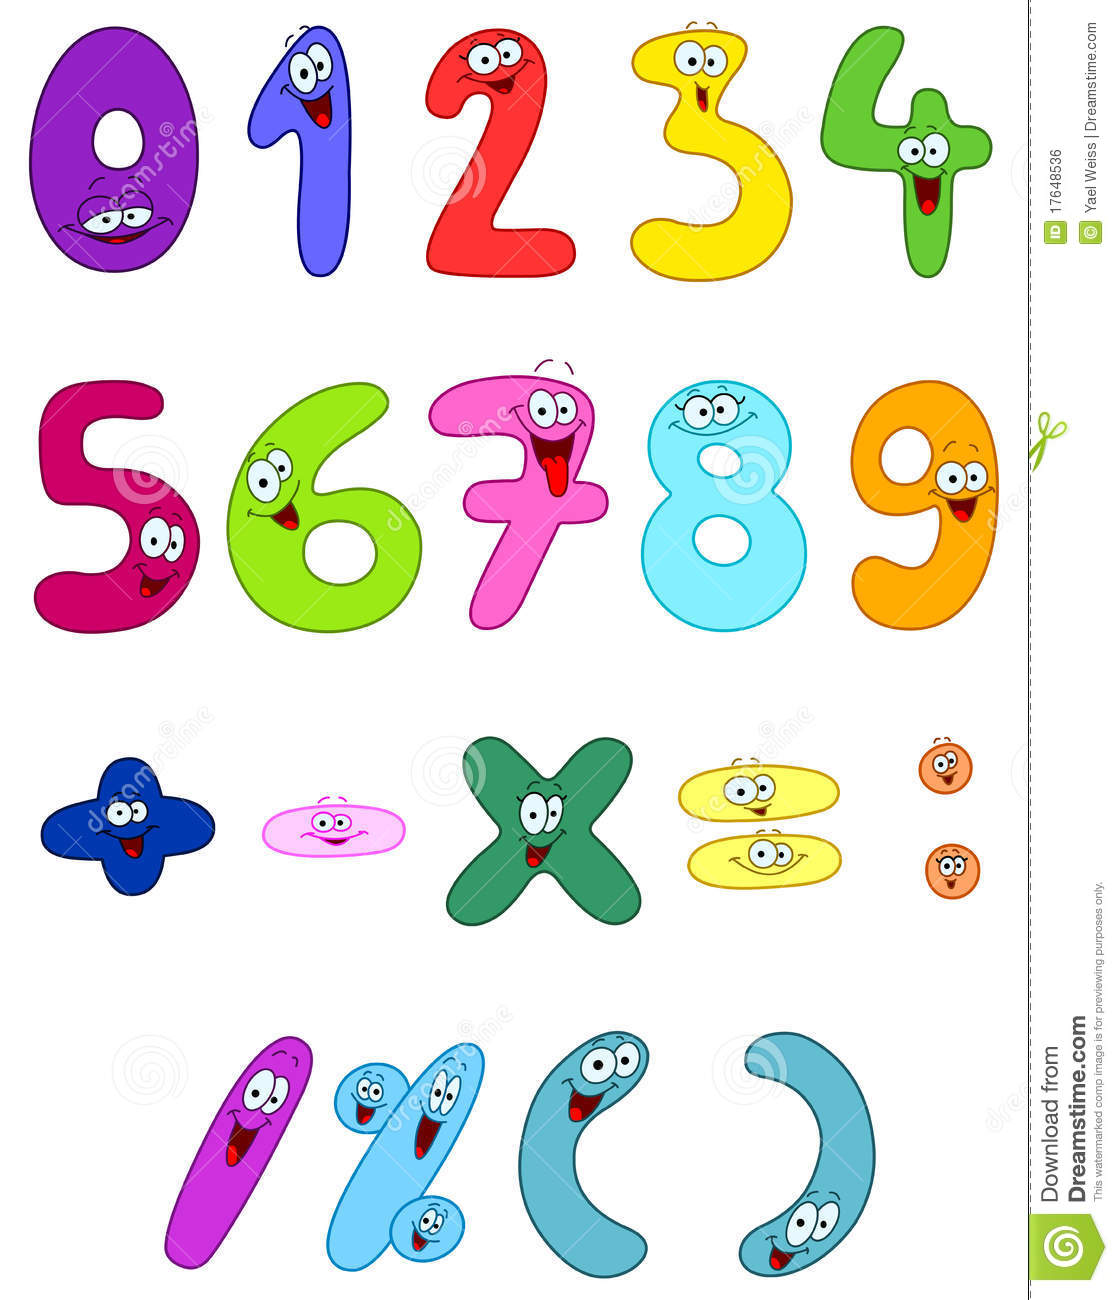 Cartoon Numbers Royalty Free Stock Image   Image  17648536